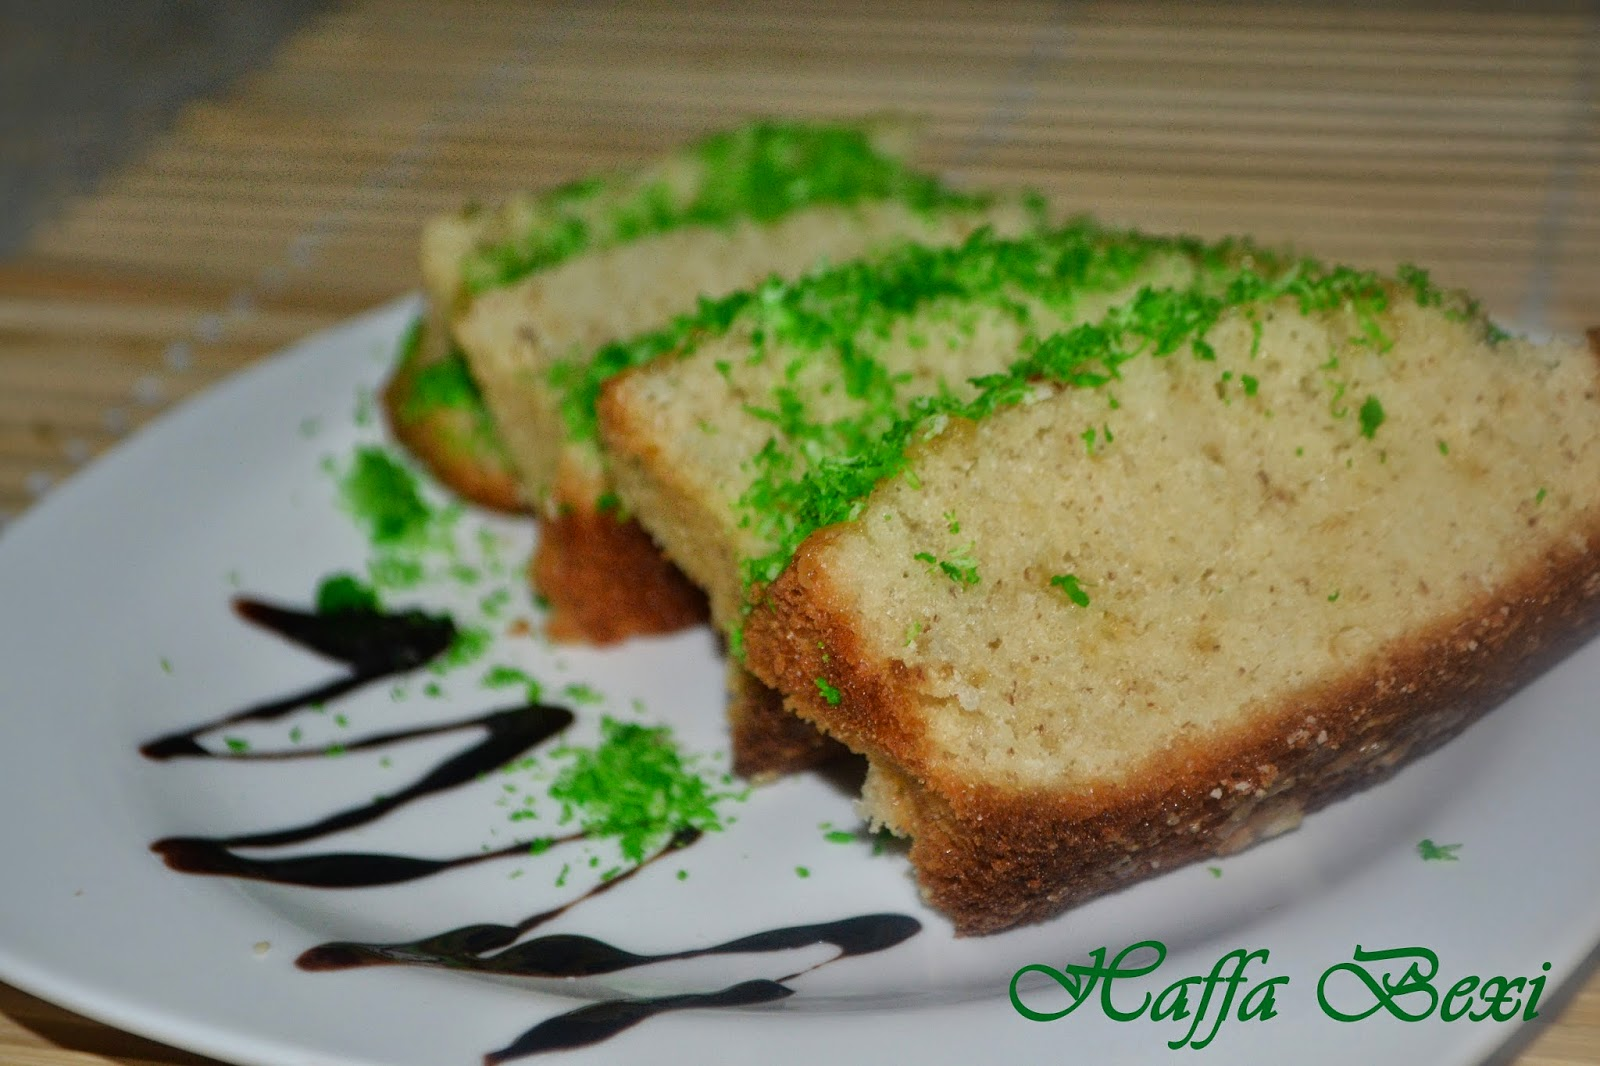 14 august special recipe, 6th sep recipe, Pakistan independence day cake, Pakistan independence day recipe, Baking, Cake, Cakes & Frostings, christmas, cream, Desserts & Sweets, eggs, festivals, Flour, Simple Cake, Simple Tea cake, Snacks, sprinkles, Tea cake, plain cake, plain cake recipe, plain sponge cake recipe, cake recipes